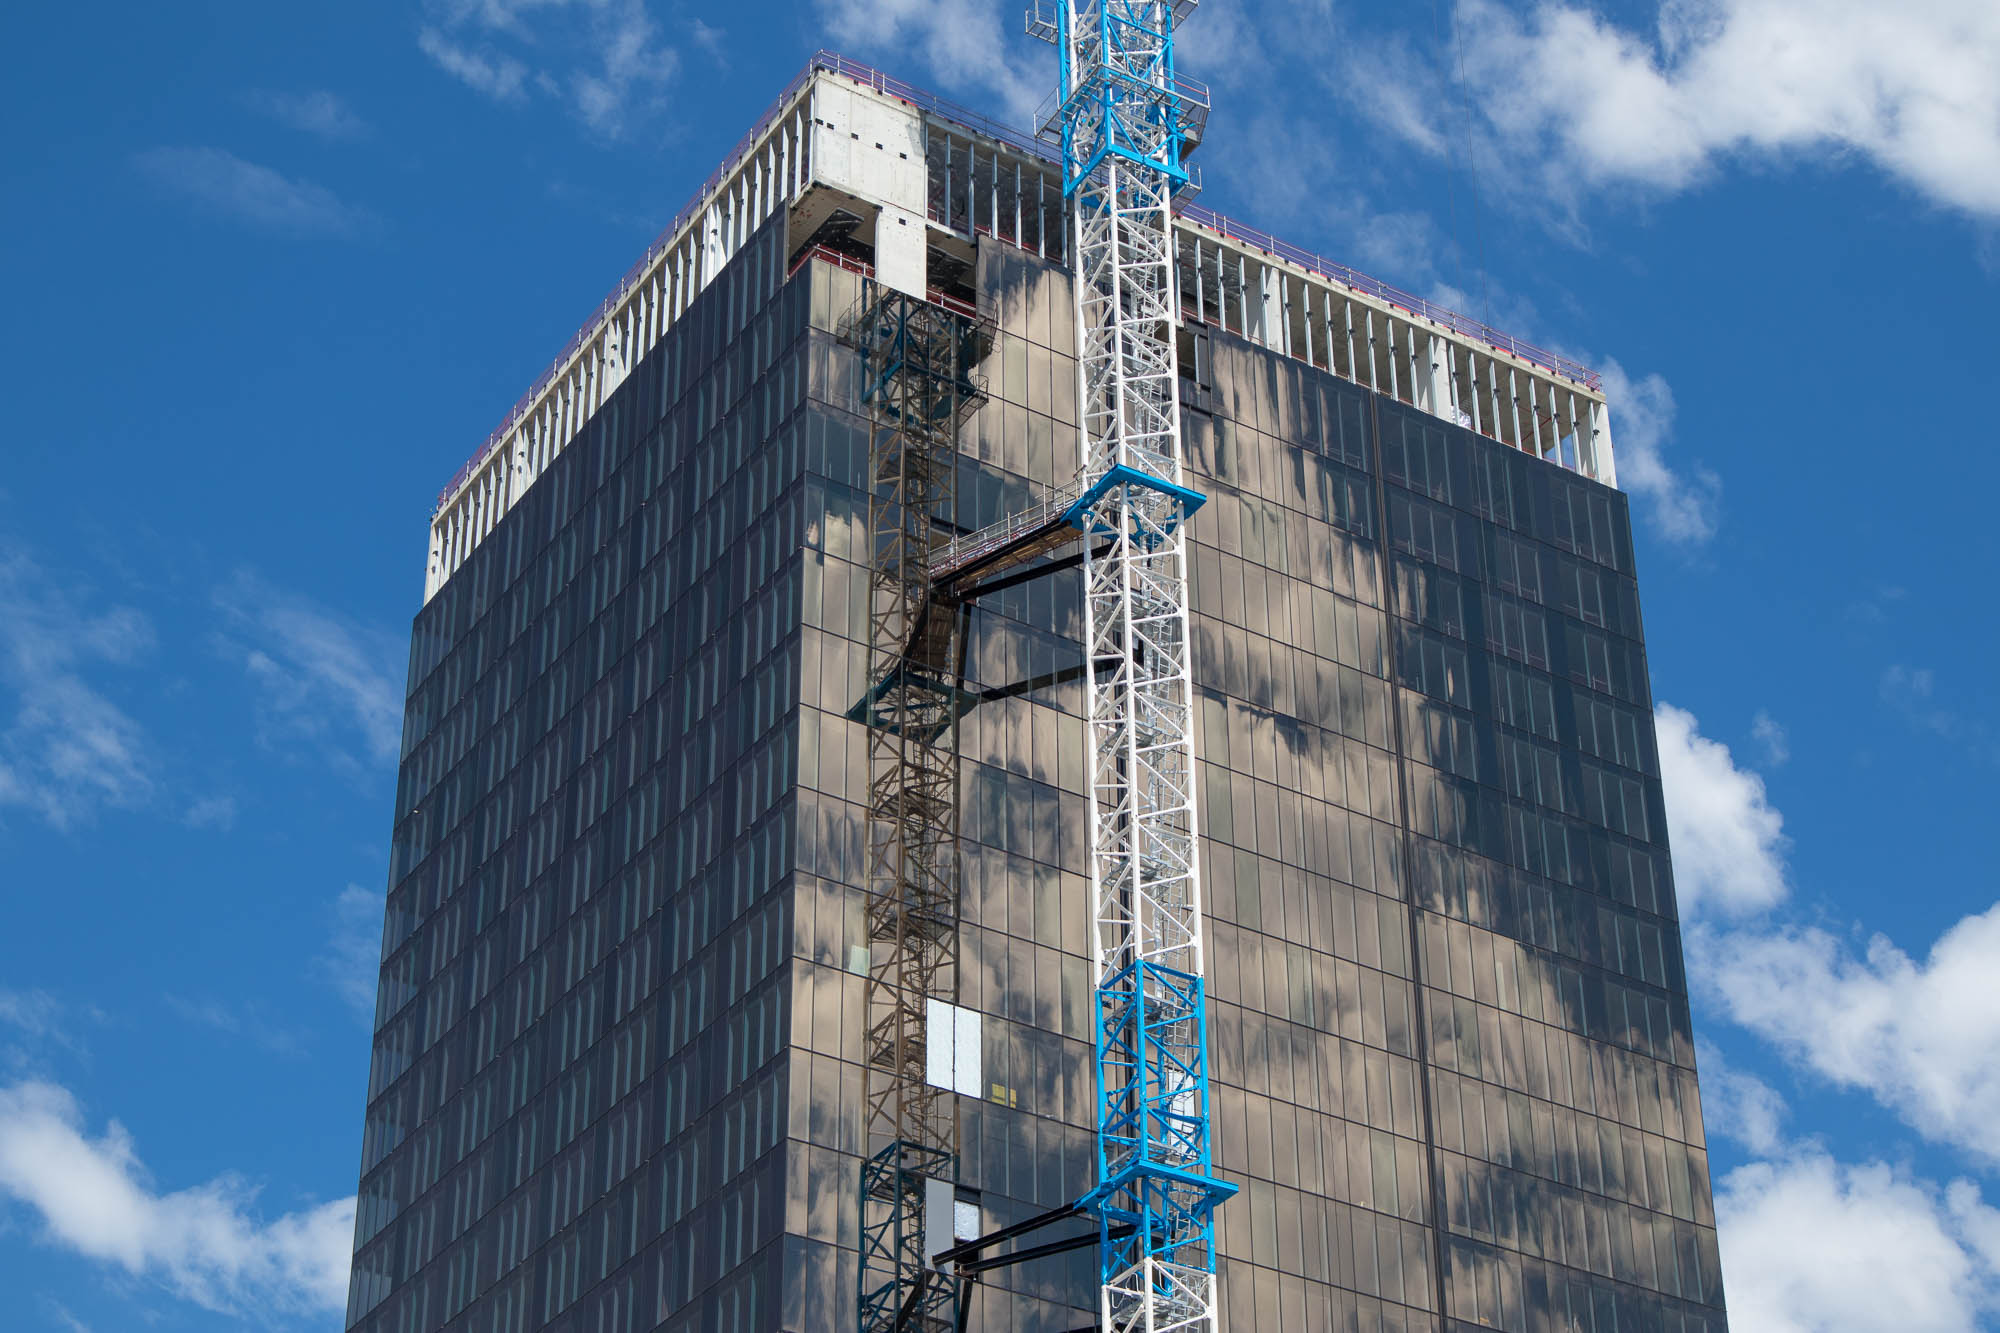 westin-tower-construction-perth-city-1